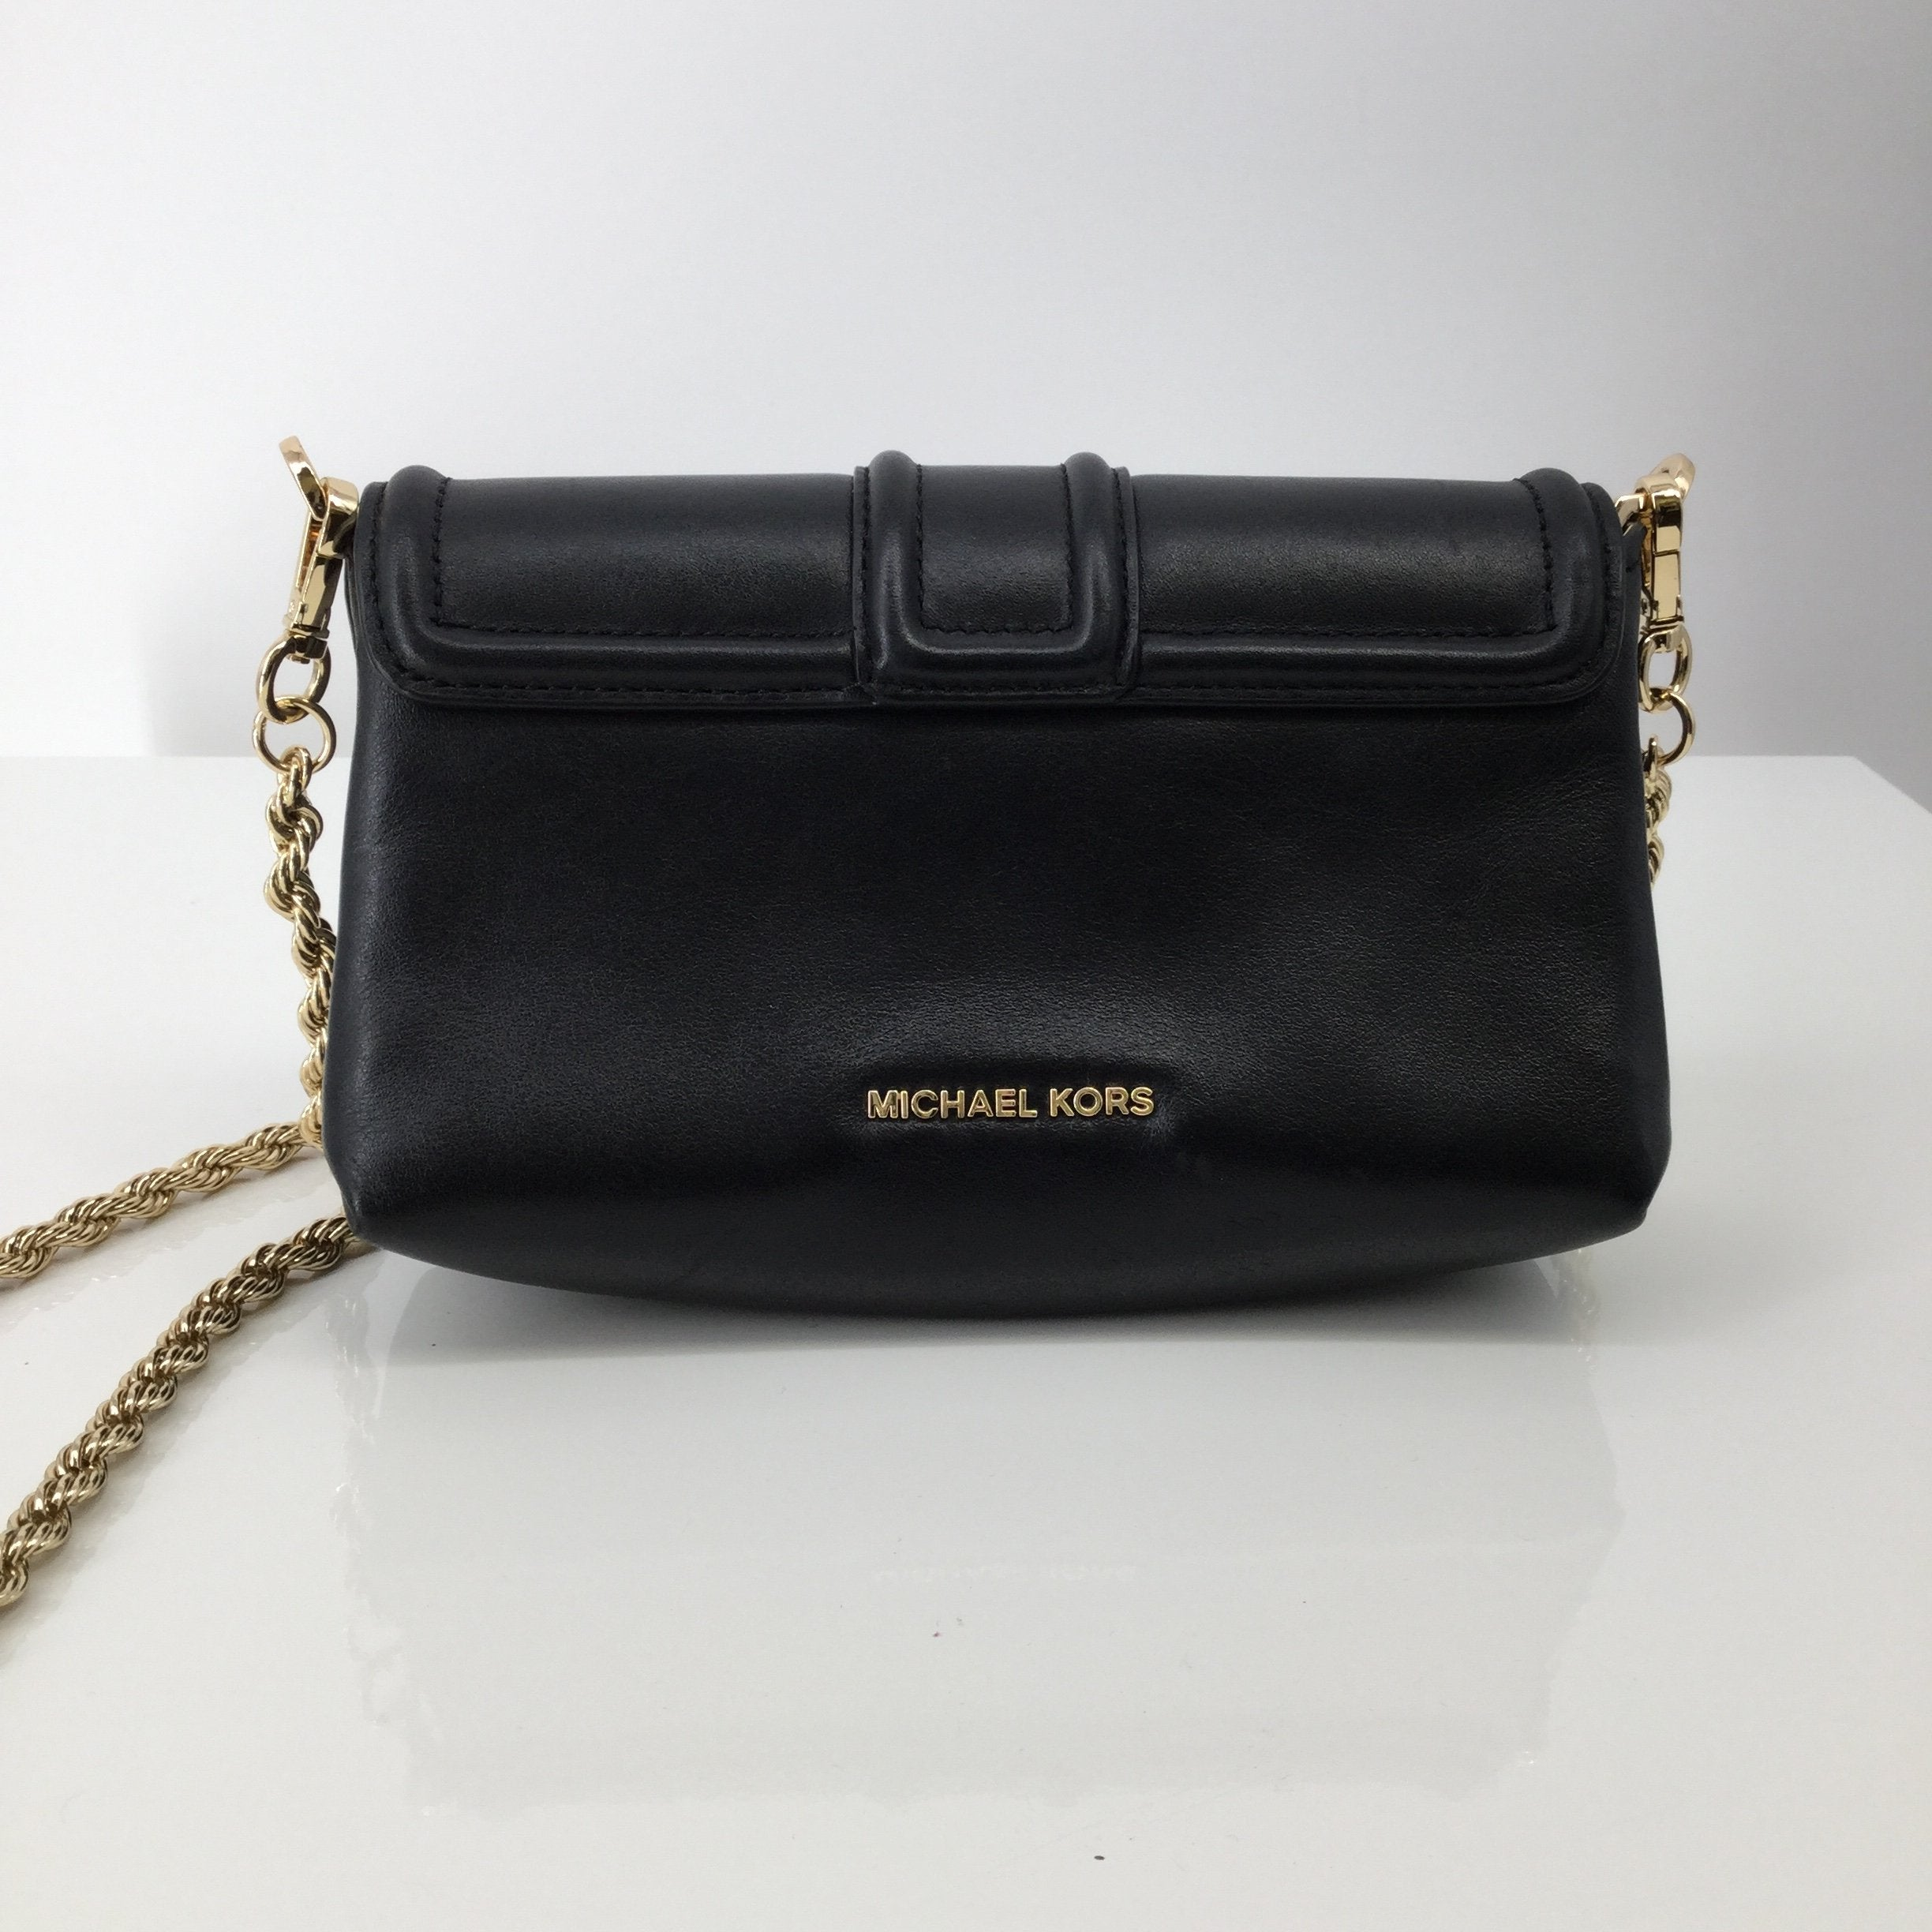 Michael Kors Designer Handbag, Leather, Black, Size: Small - <P>THIS MICHAEL KORS CROSSBODY FEATURES A GOLD CHAIN STRAP AND A GOLD LOCK ON THE FRONT. THE BAG CLOSES WITH A MAGNET. THIS CUTE CROSSBODY DOES COME WITH A BIT OF WEAR. THERE ARE SOME MINOR SCRATCHES ON THE BACK NEAR THE BOTTOM (SEE PHOTOS).</P>